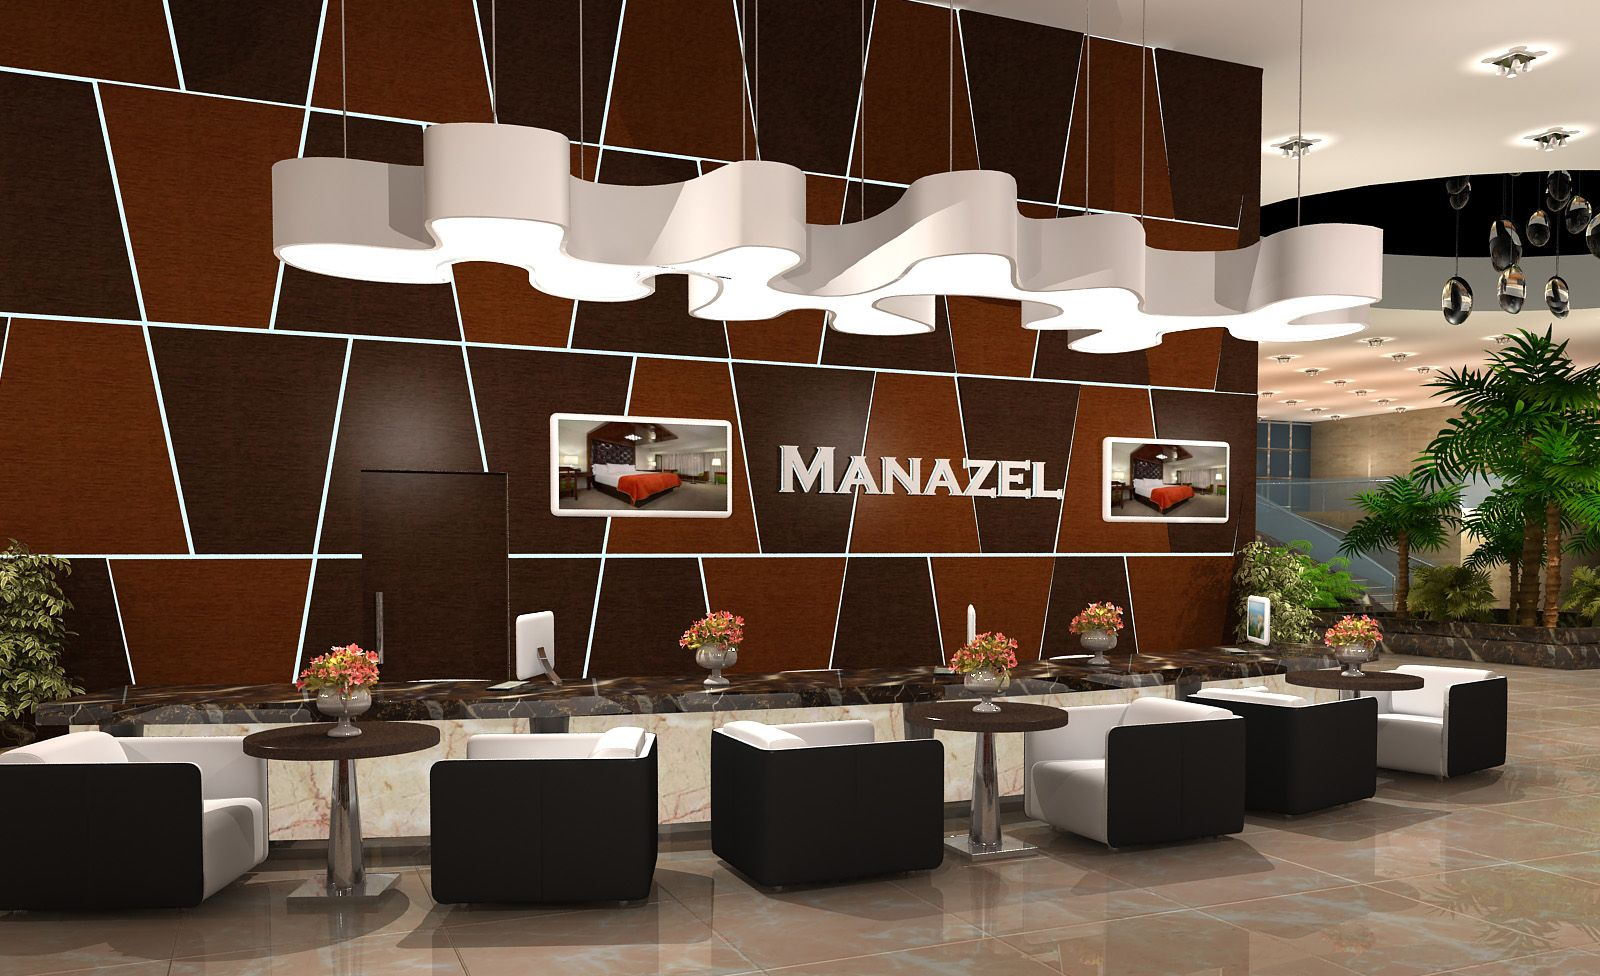 The first ferry manazil five star hotel lobby design for Small hotel interior design